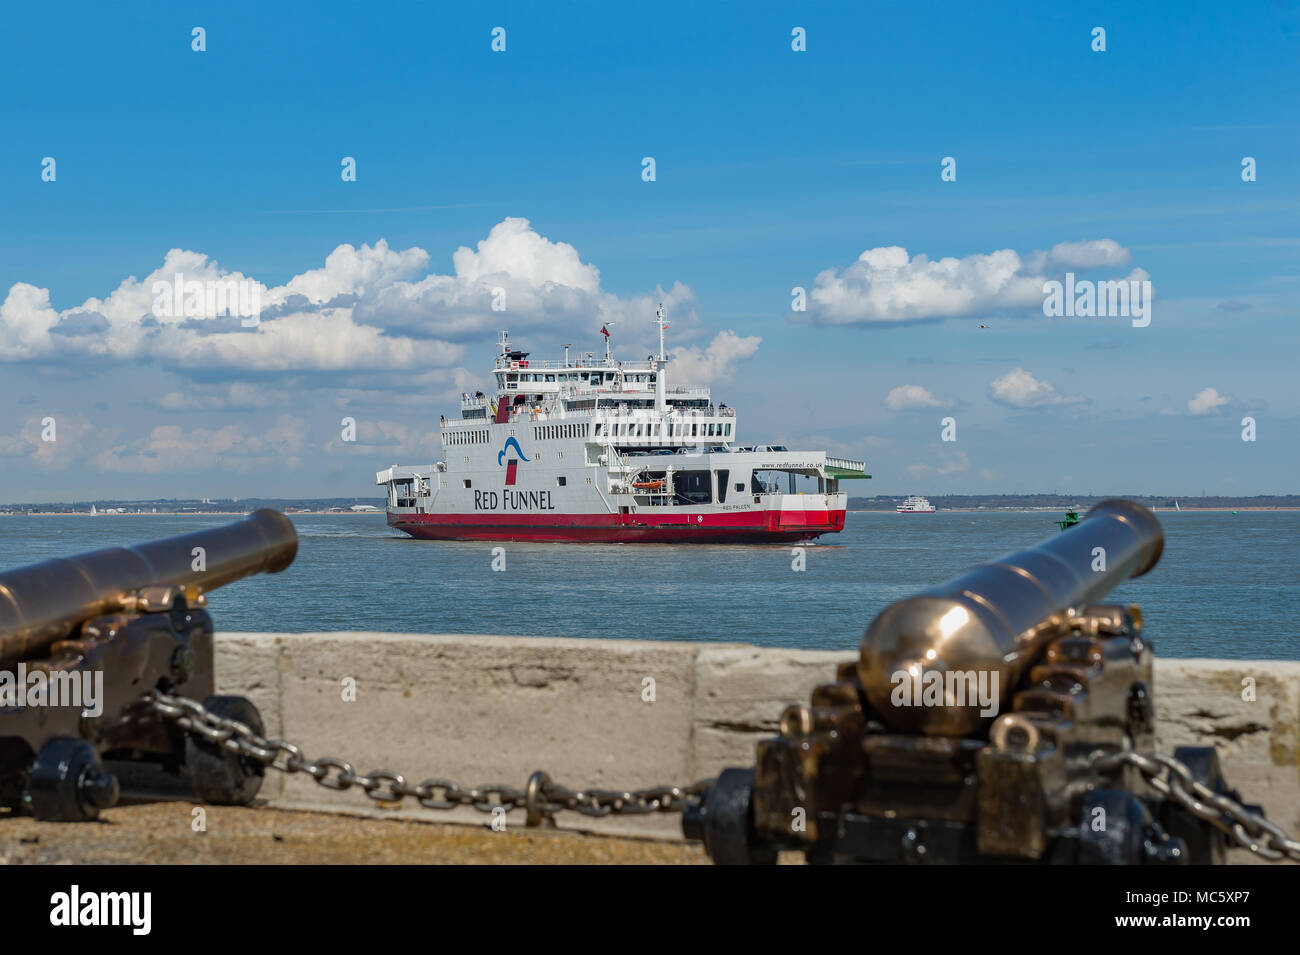 Red Funnel Car Ferry Entering Cowes Harbour; Isle of Wight - UK Stock Photo